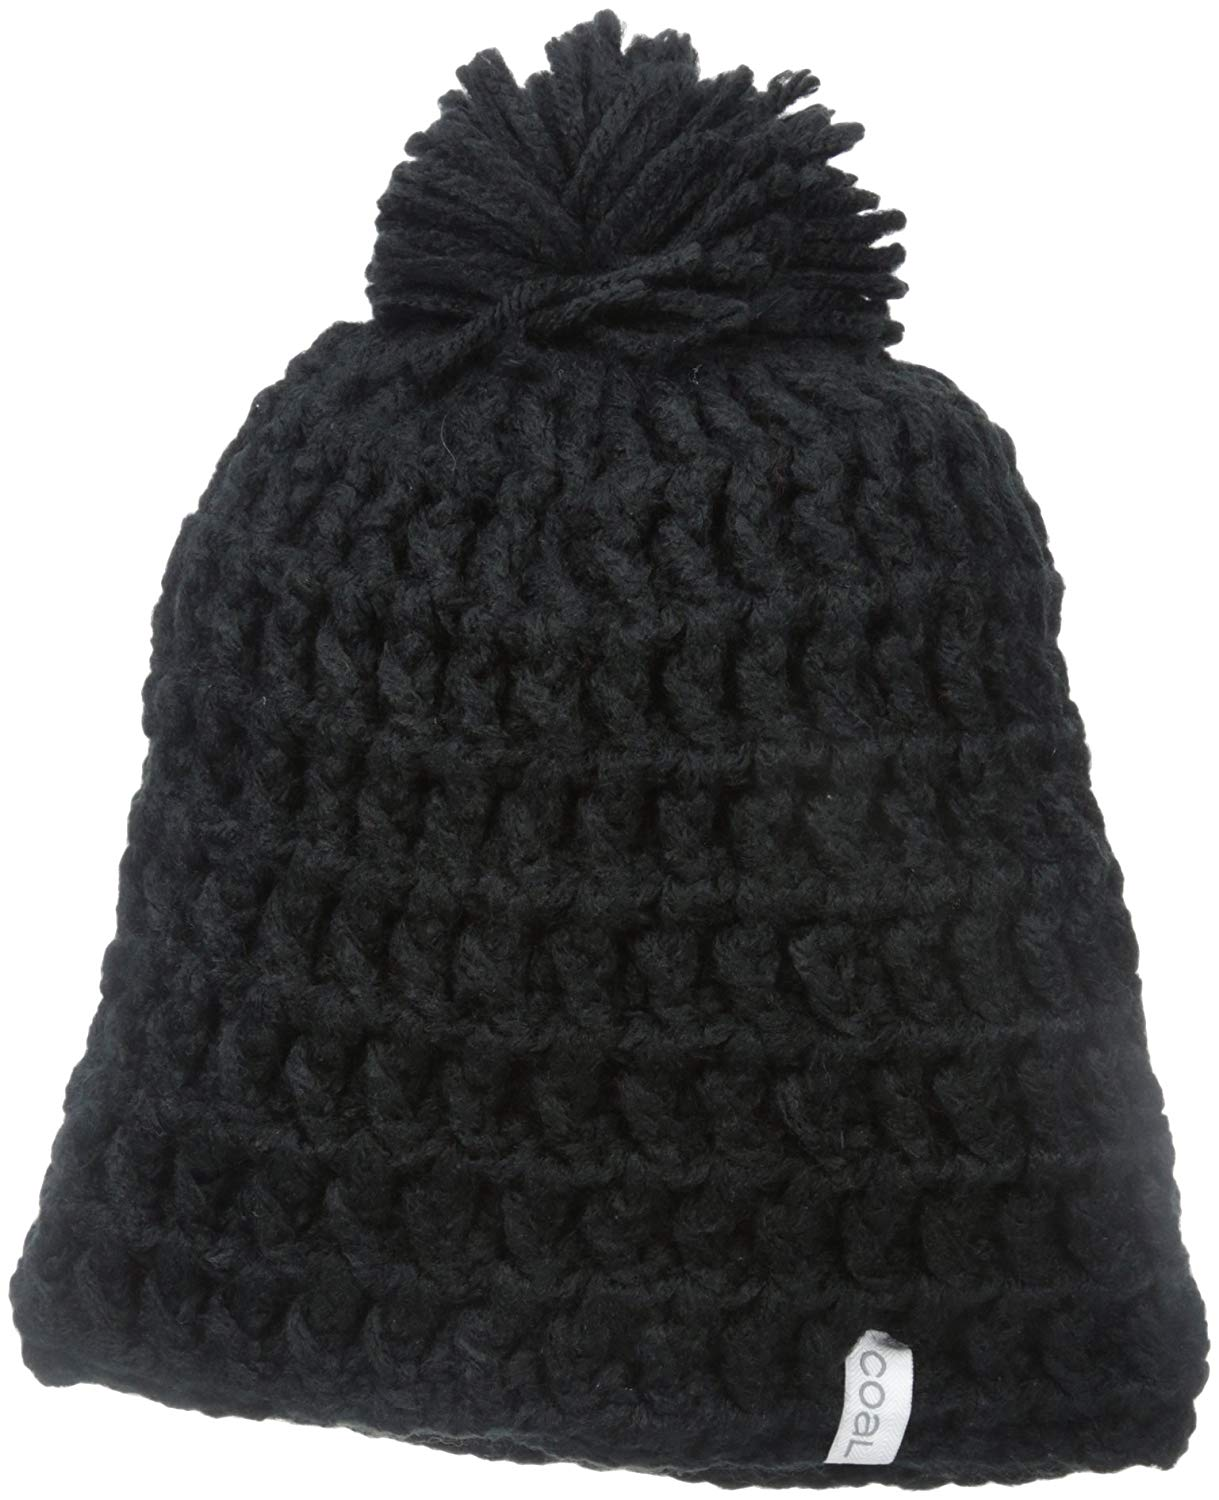 3b3989a59b4 Get Quotations · Coal Men s The Waffle Beanie